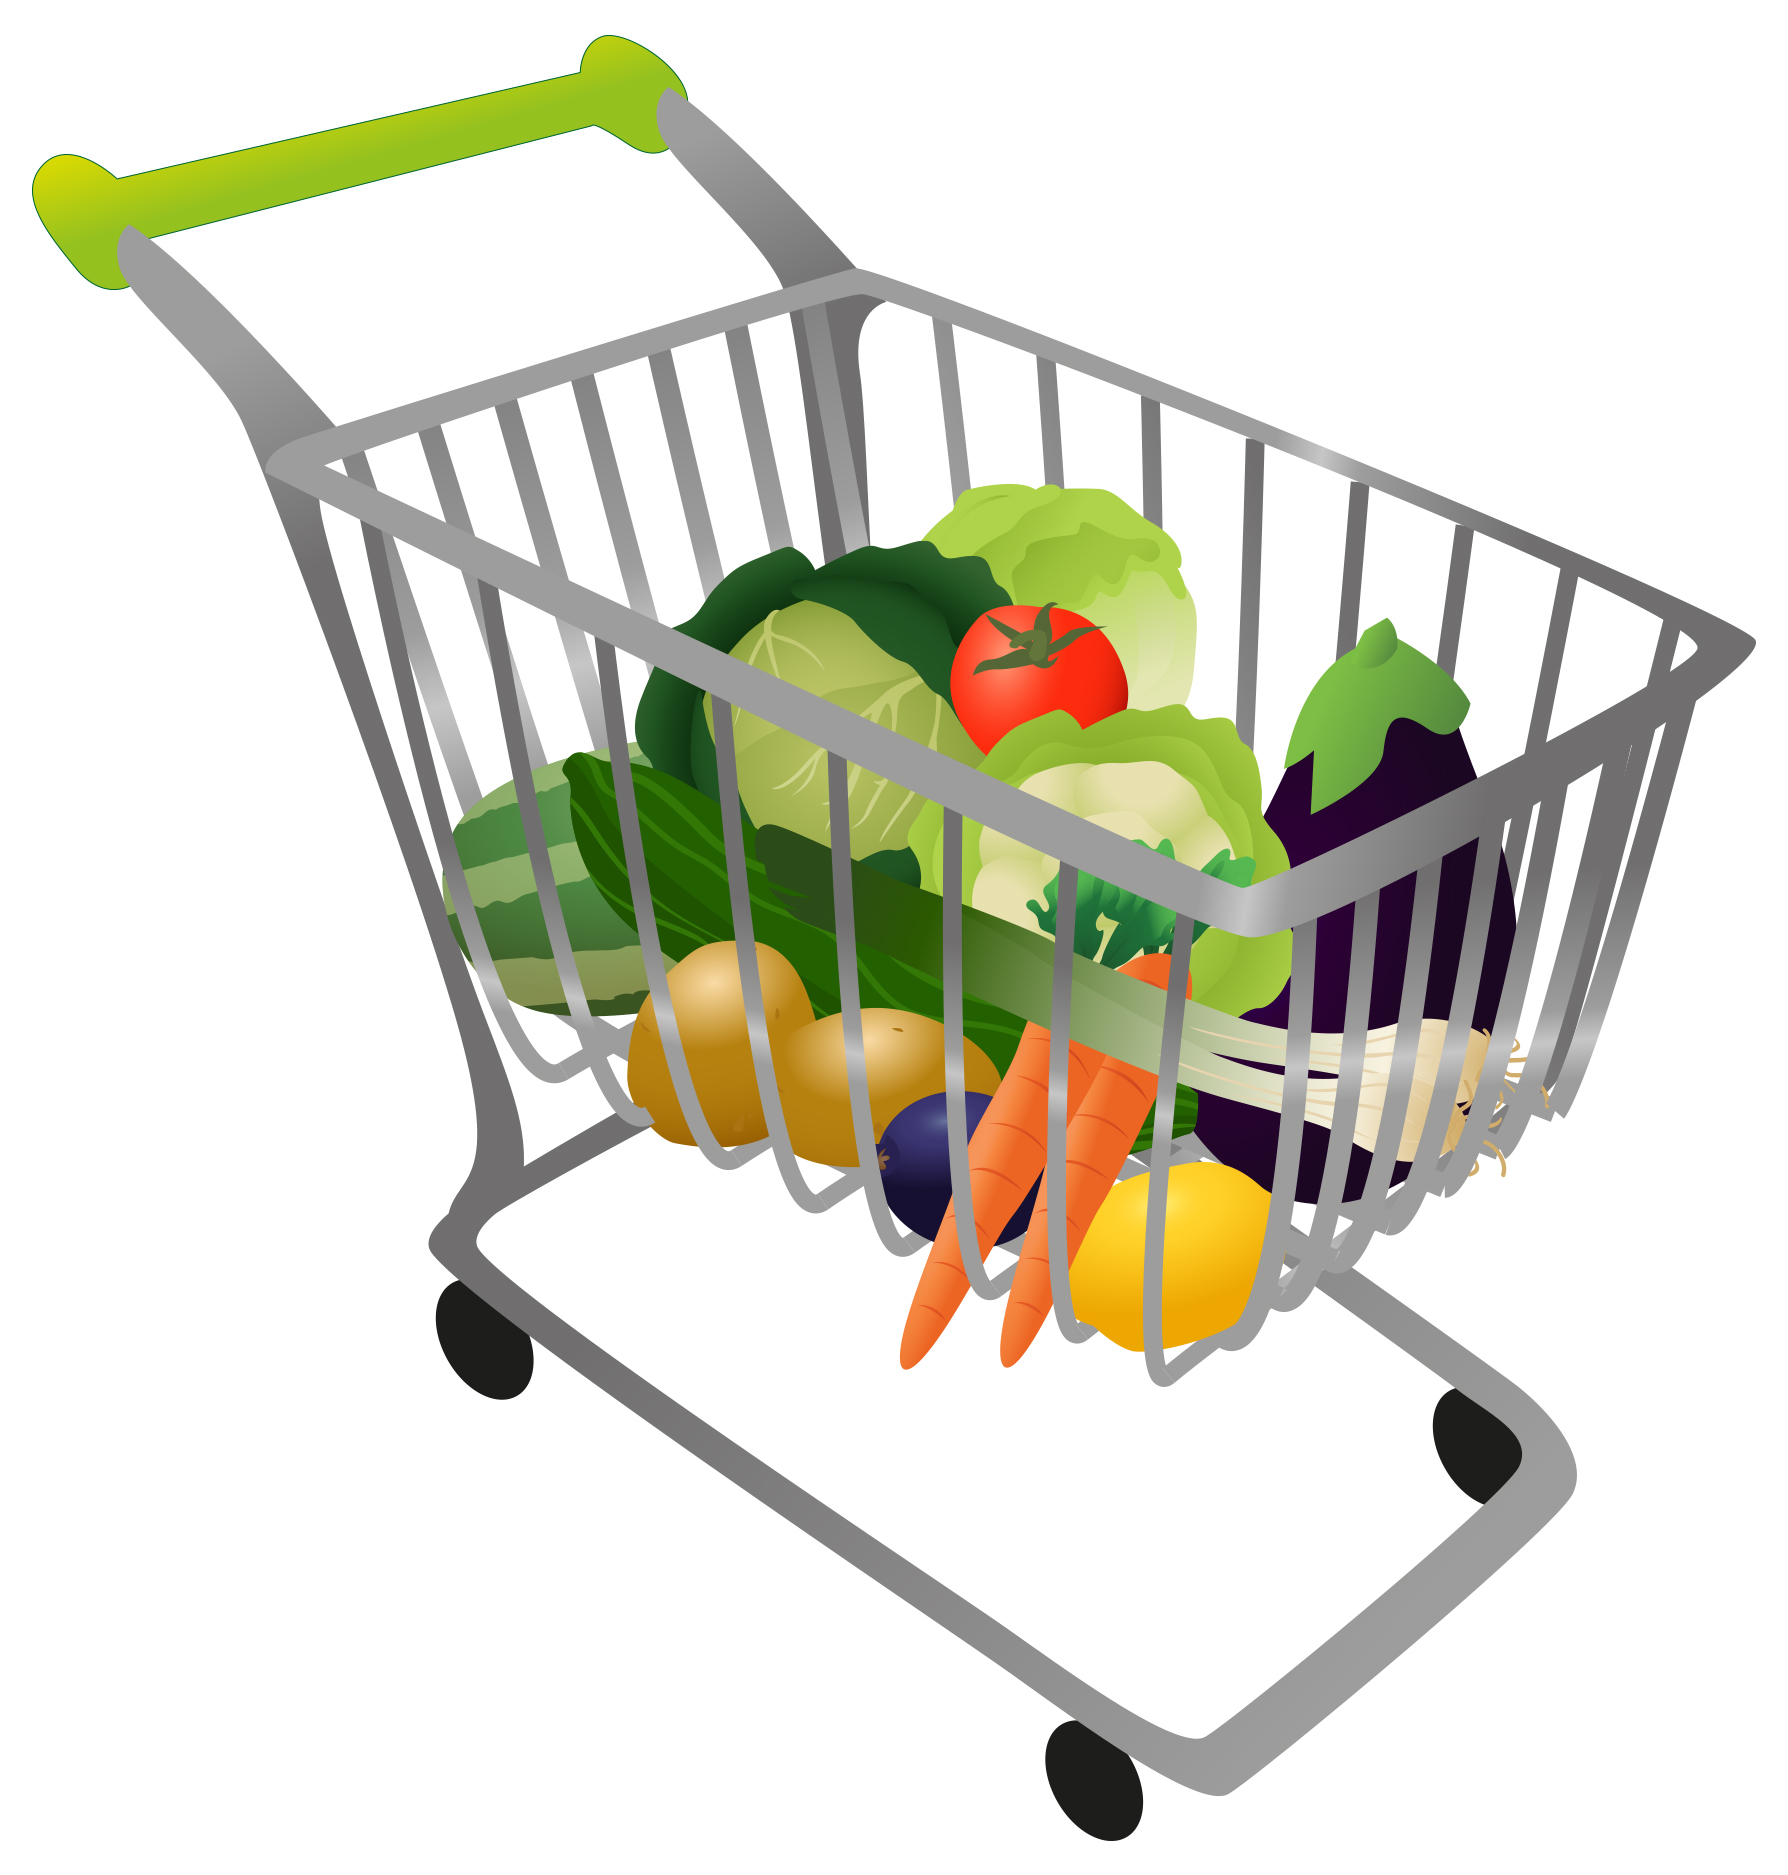 View Shopping_cart.jpg Clipart - Free Nutrition and ...